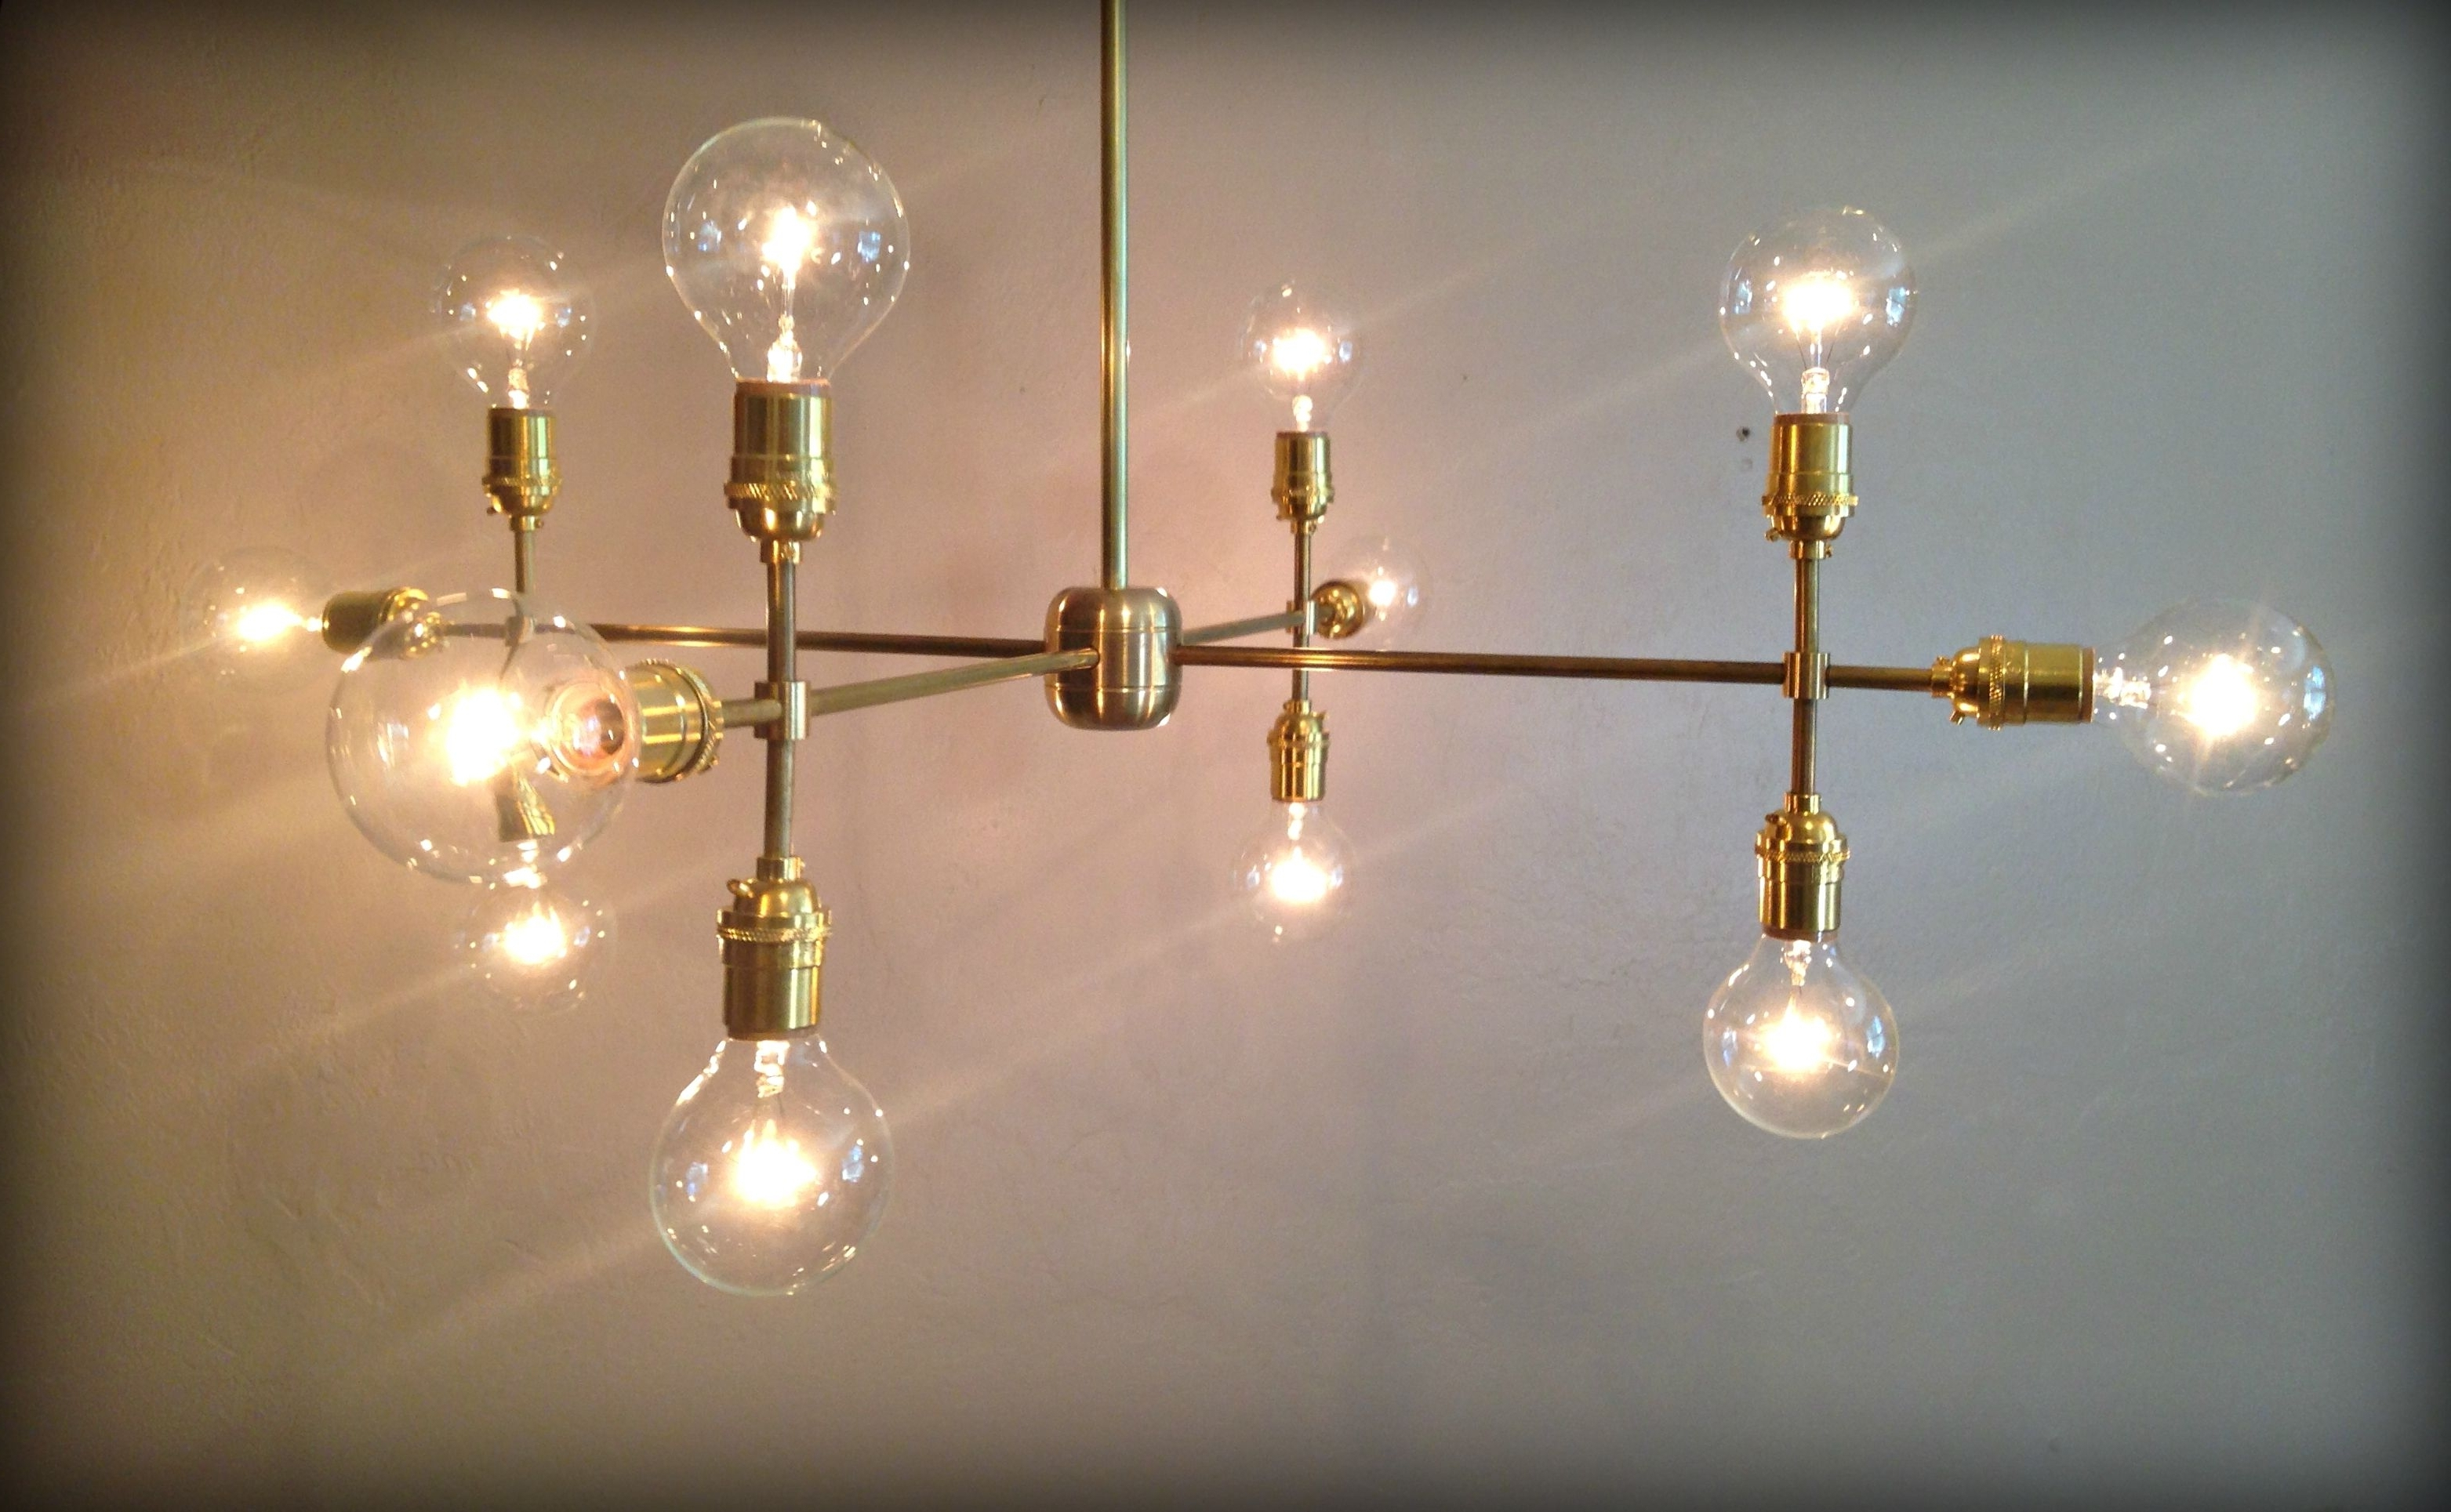 Fashionable Oversized Modern Chandeliers – Chandelier Designs Pertaining To Lucinda Branch Chandelier (View 5 of 15)